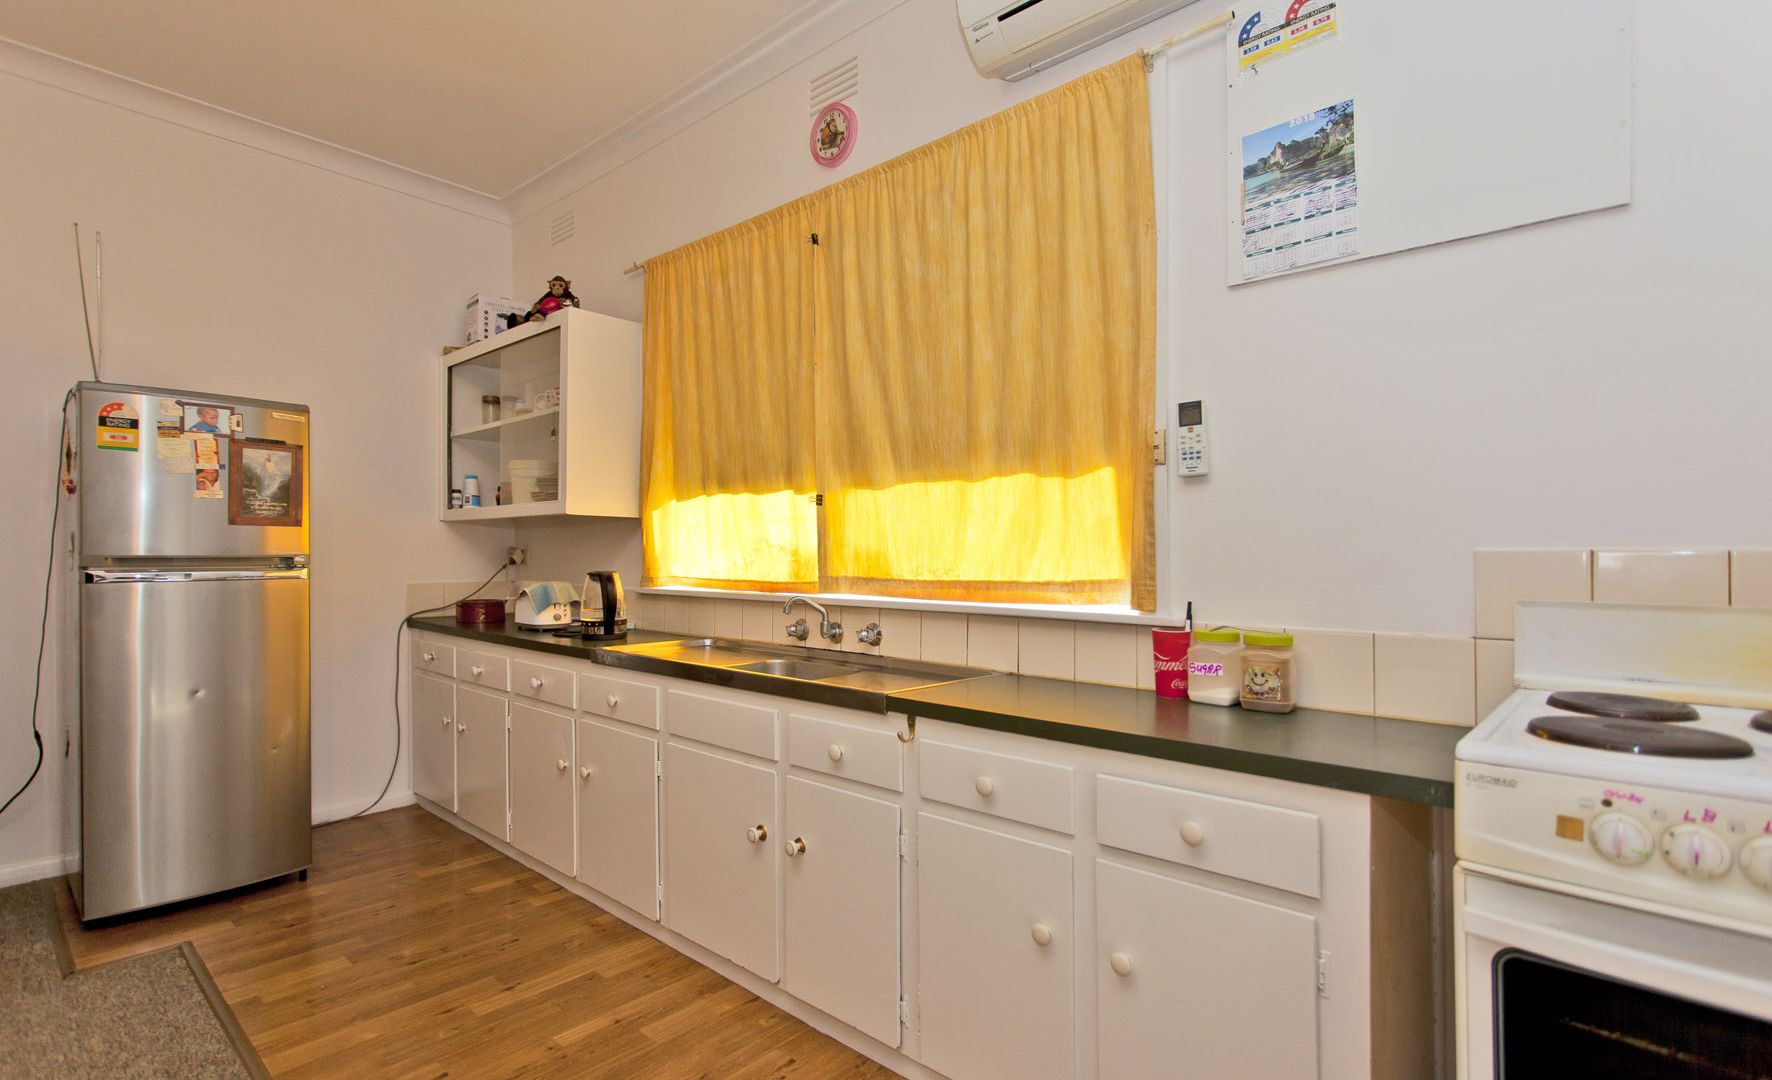 2/353 Olive Street, South Albury NSW 2640, Image 1